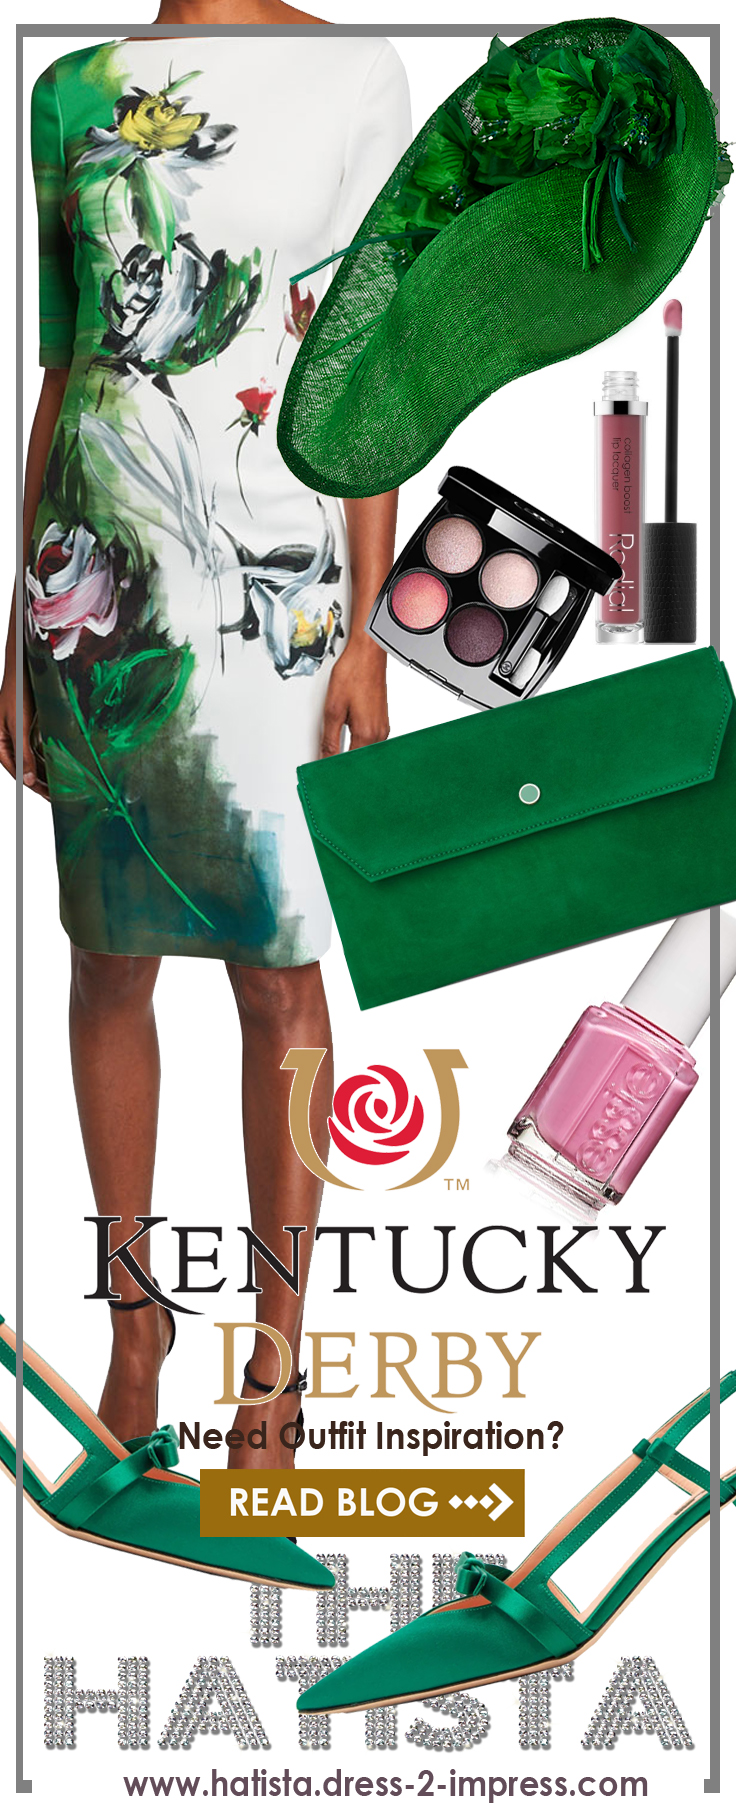 Kentucky Derby outfit ideas. Floral Dresses for the Kentucky Derby. What to wear for the Kentucky Derby. What to wear to the Races. Kentucky Derby Dresses. Kentucky Derby Hats. #kentuckyderby #ootd #outfitideas